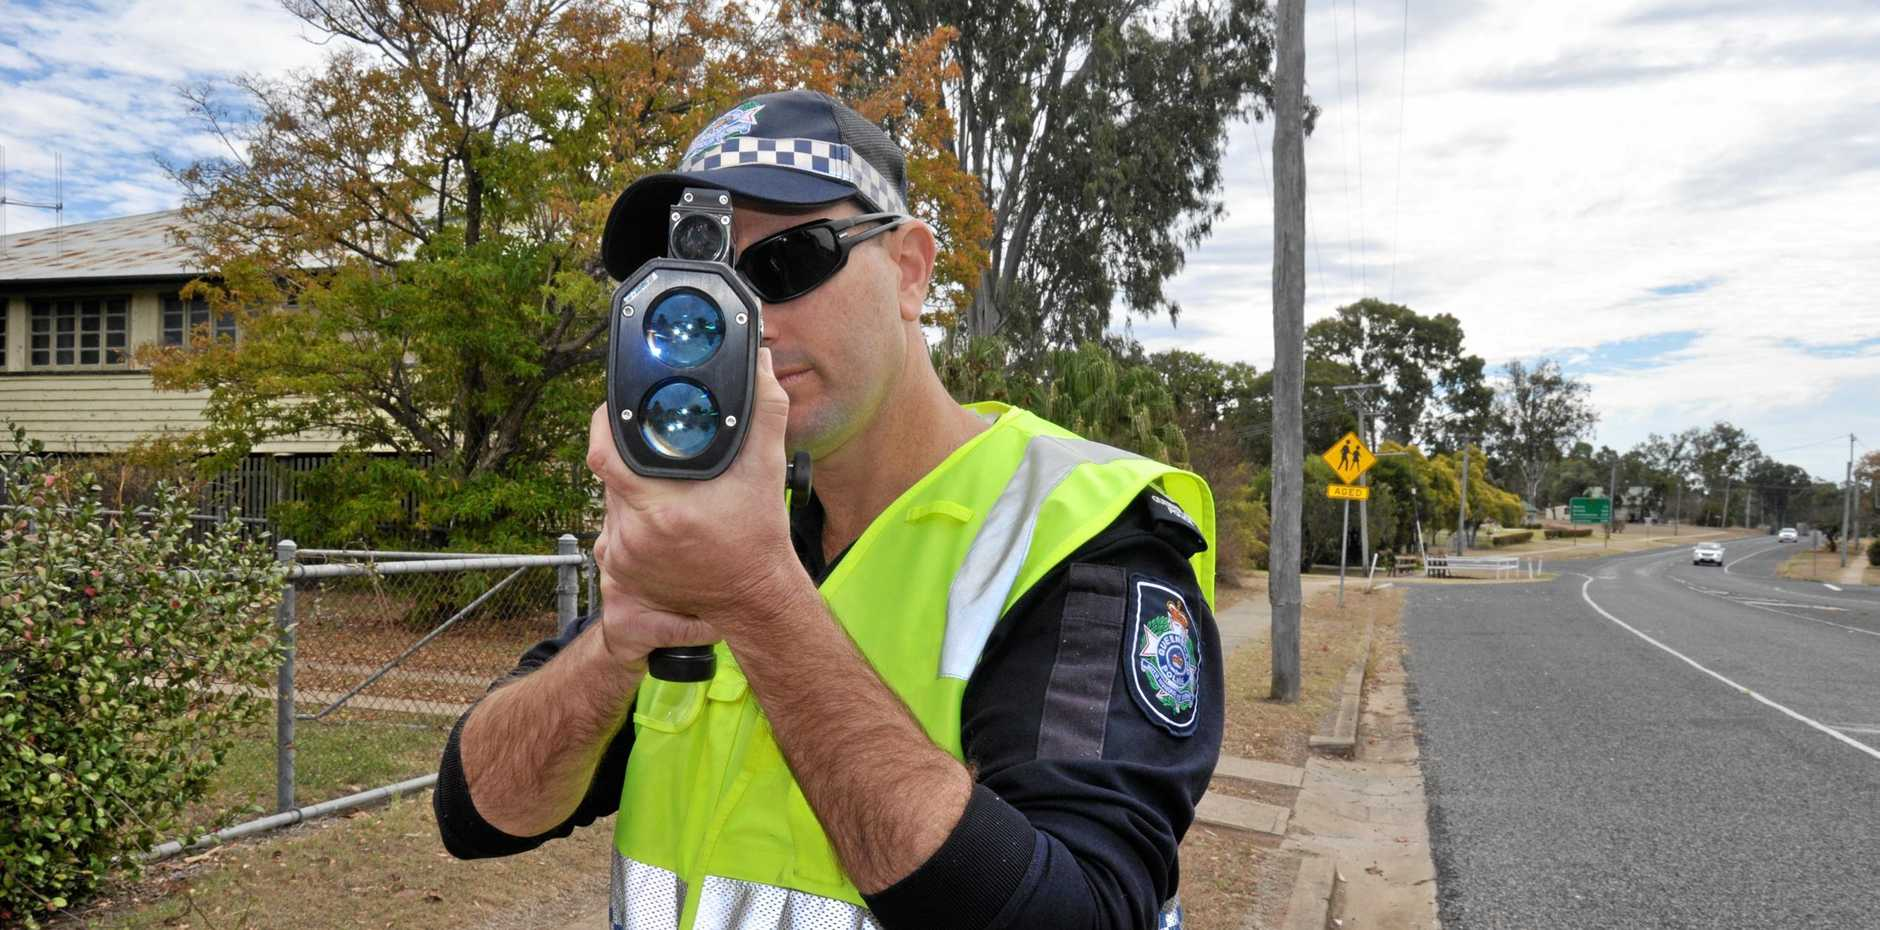 ROAD SAFETY: A man was handed a $1218 fine, lost eight points and received an automatic six month suspension after being caught speeding.